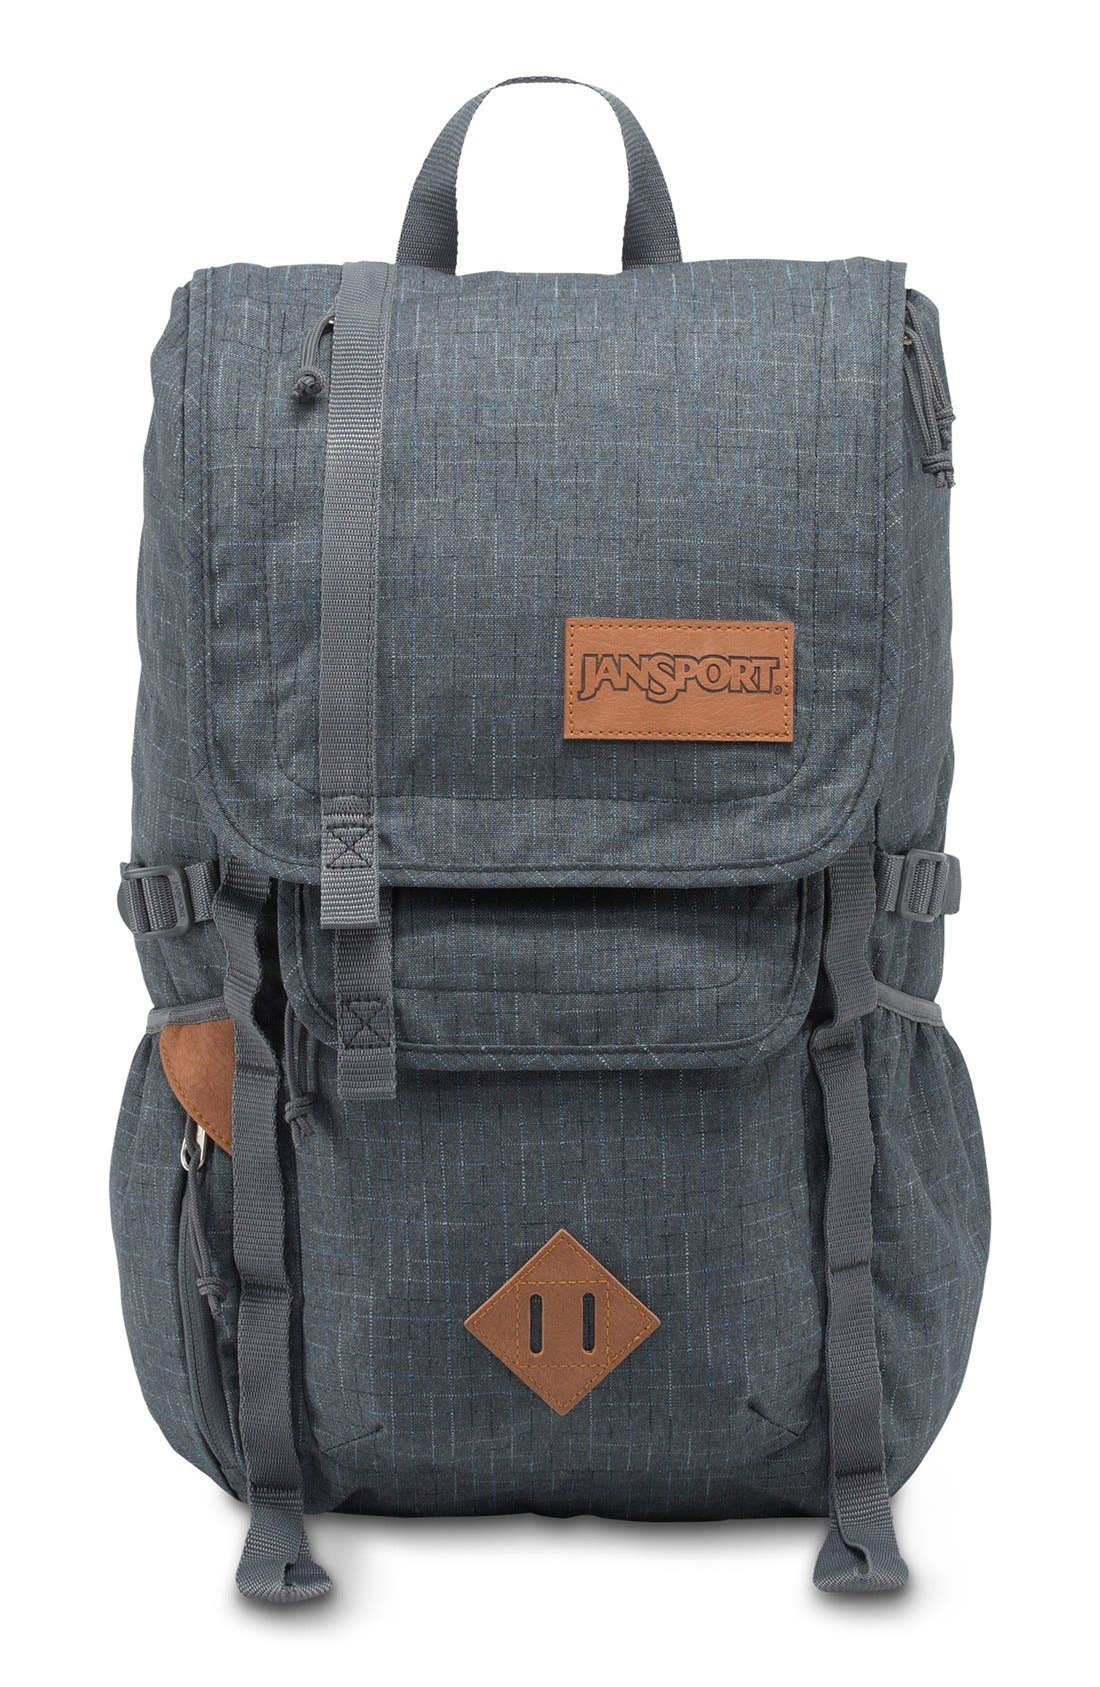 Jansport 'Hatchet' Backpack